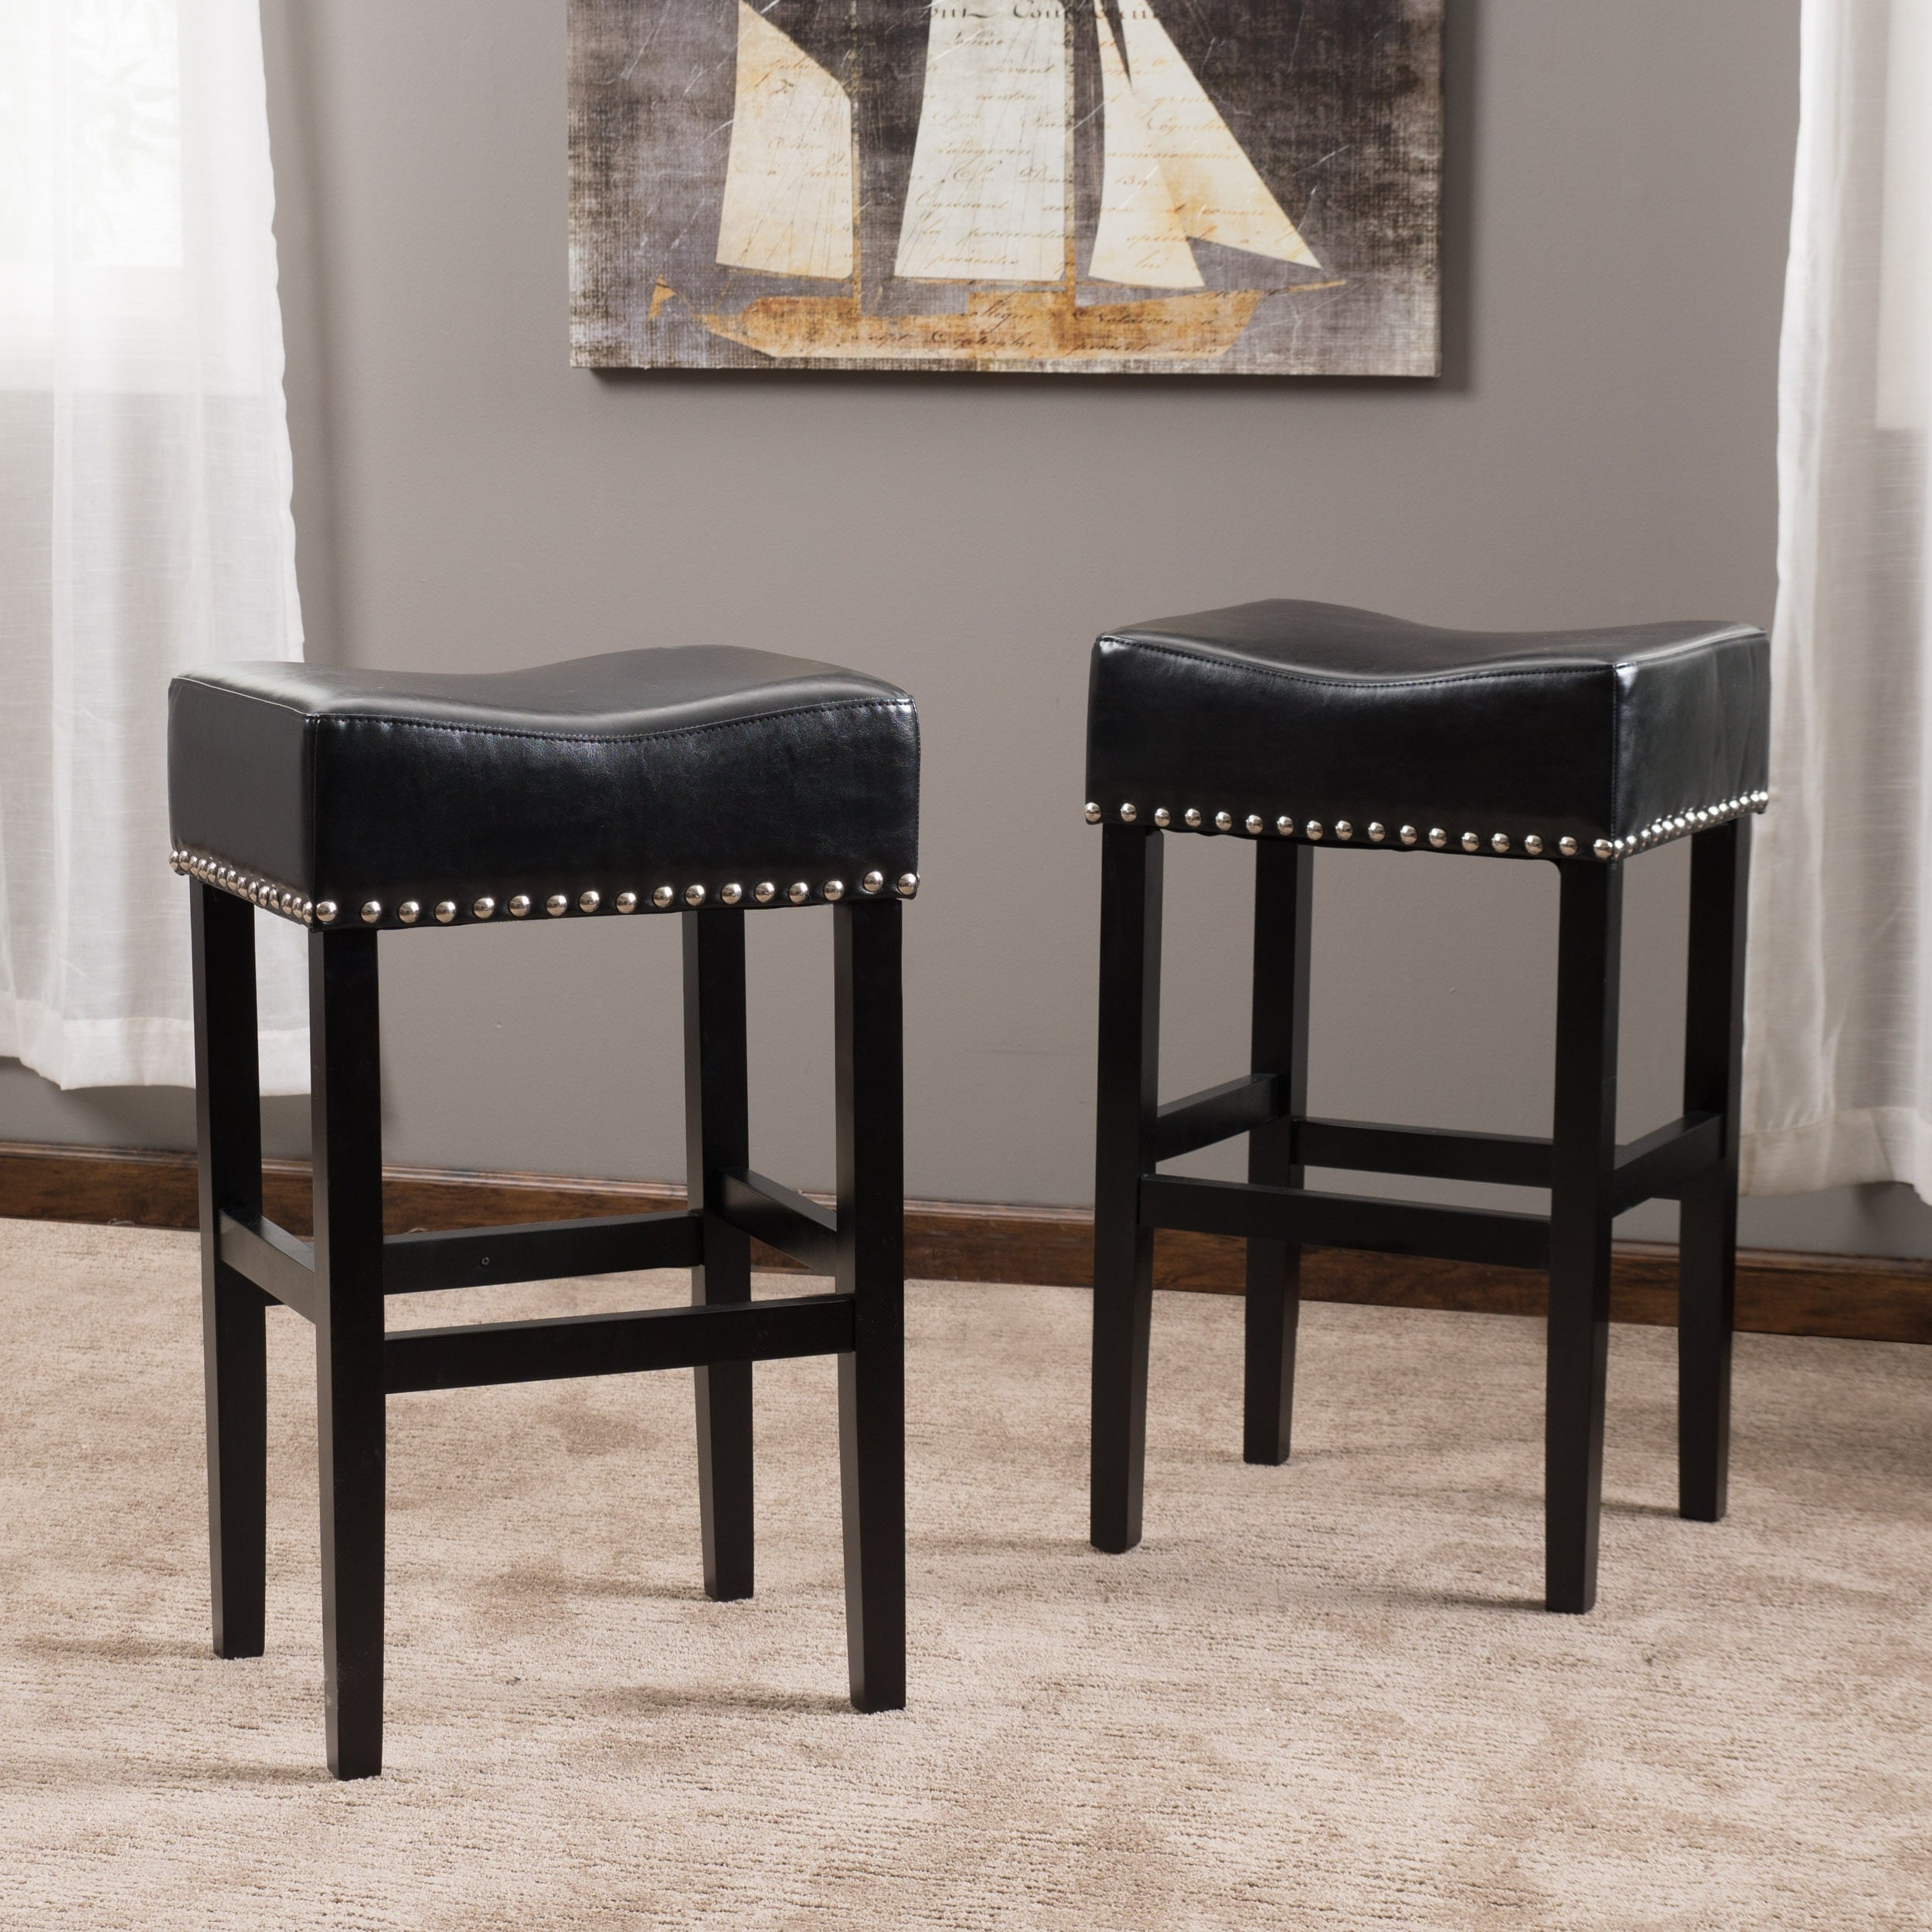 Shop lisette 30 inch backless leather bar stool set of 2 by christopher knight home on sale free shipping today overstock com 8661881